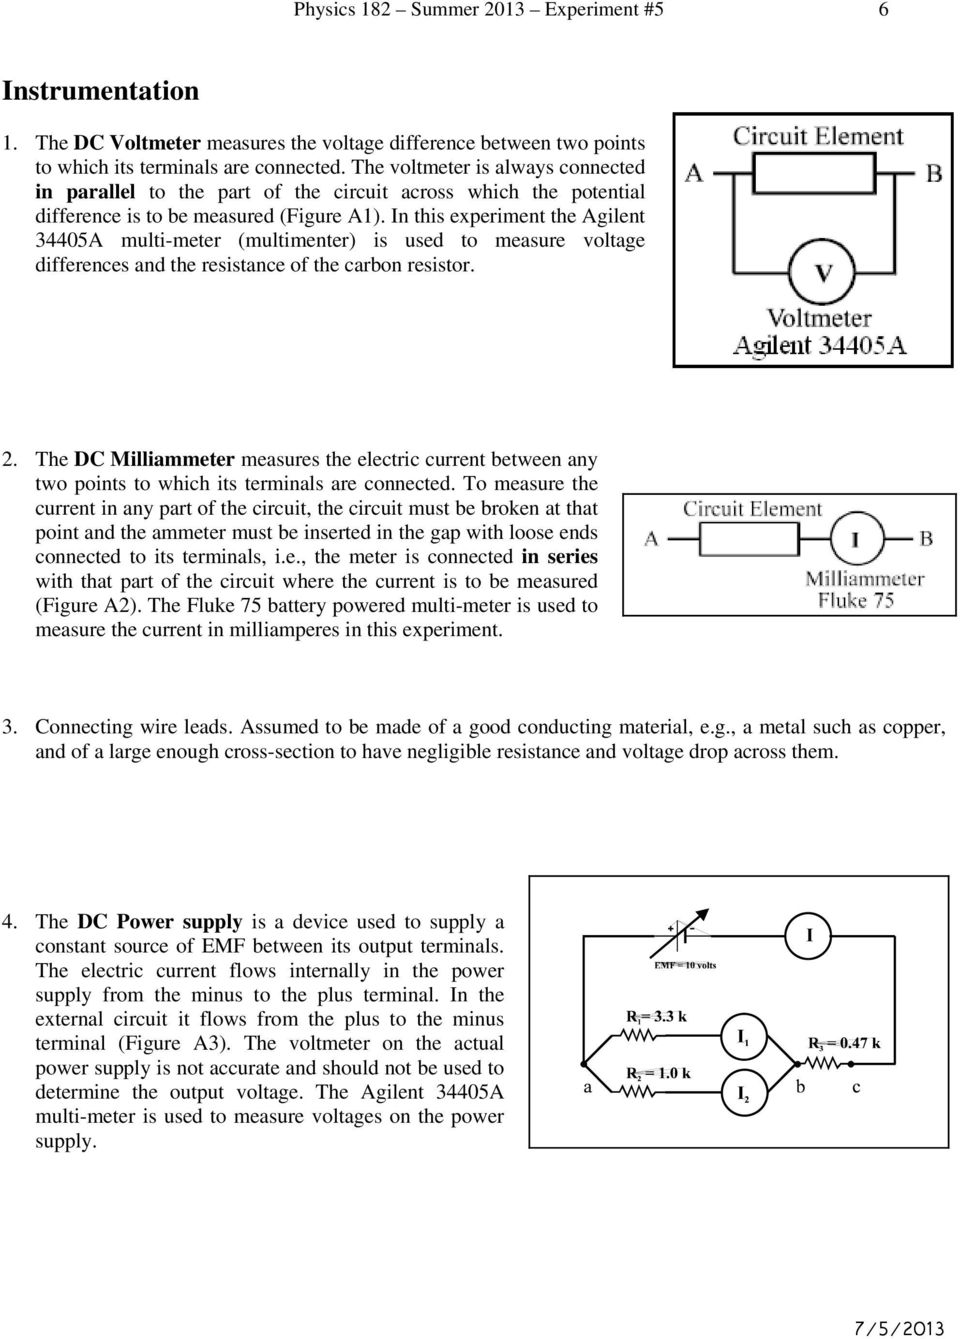 Experiment 5 Series And Parallel Circuits Kirchhoff S Laws Pdf Voltage Drop In A Circuit This The Agilent 34405a Multi Meter Multimenter Is Used To Measure